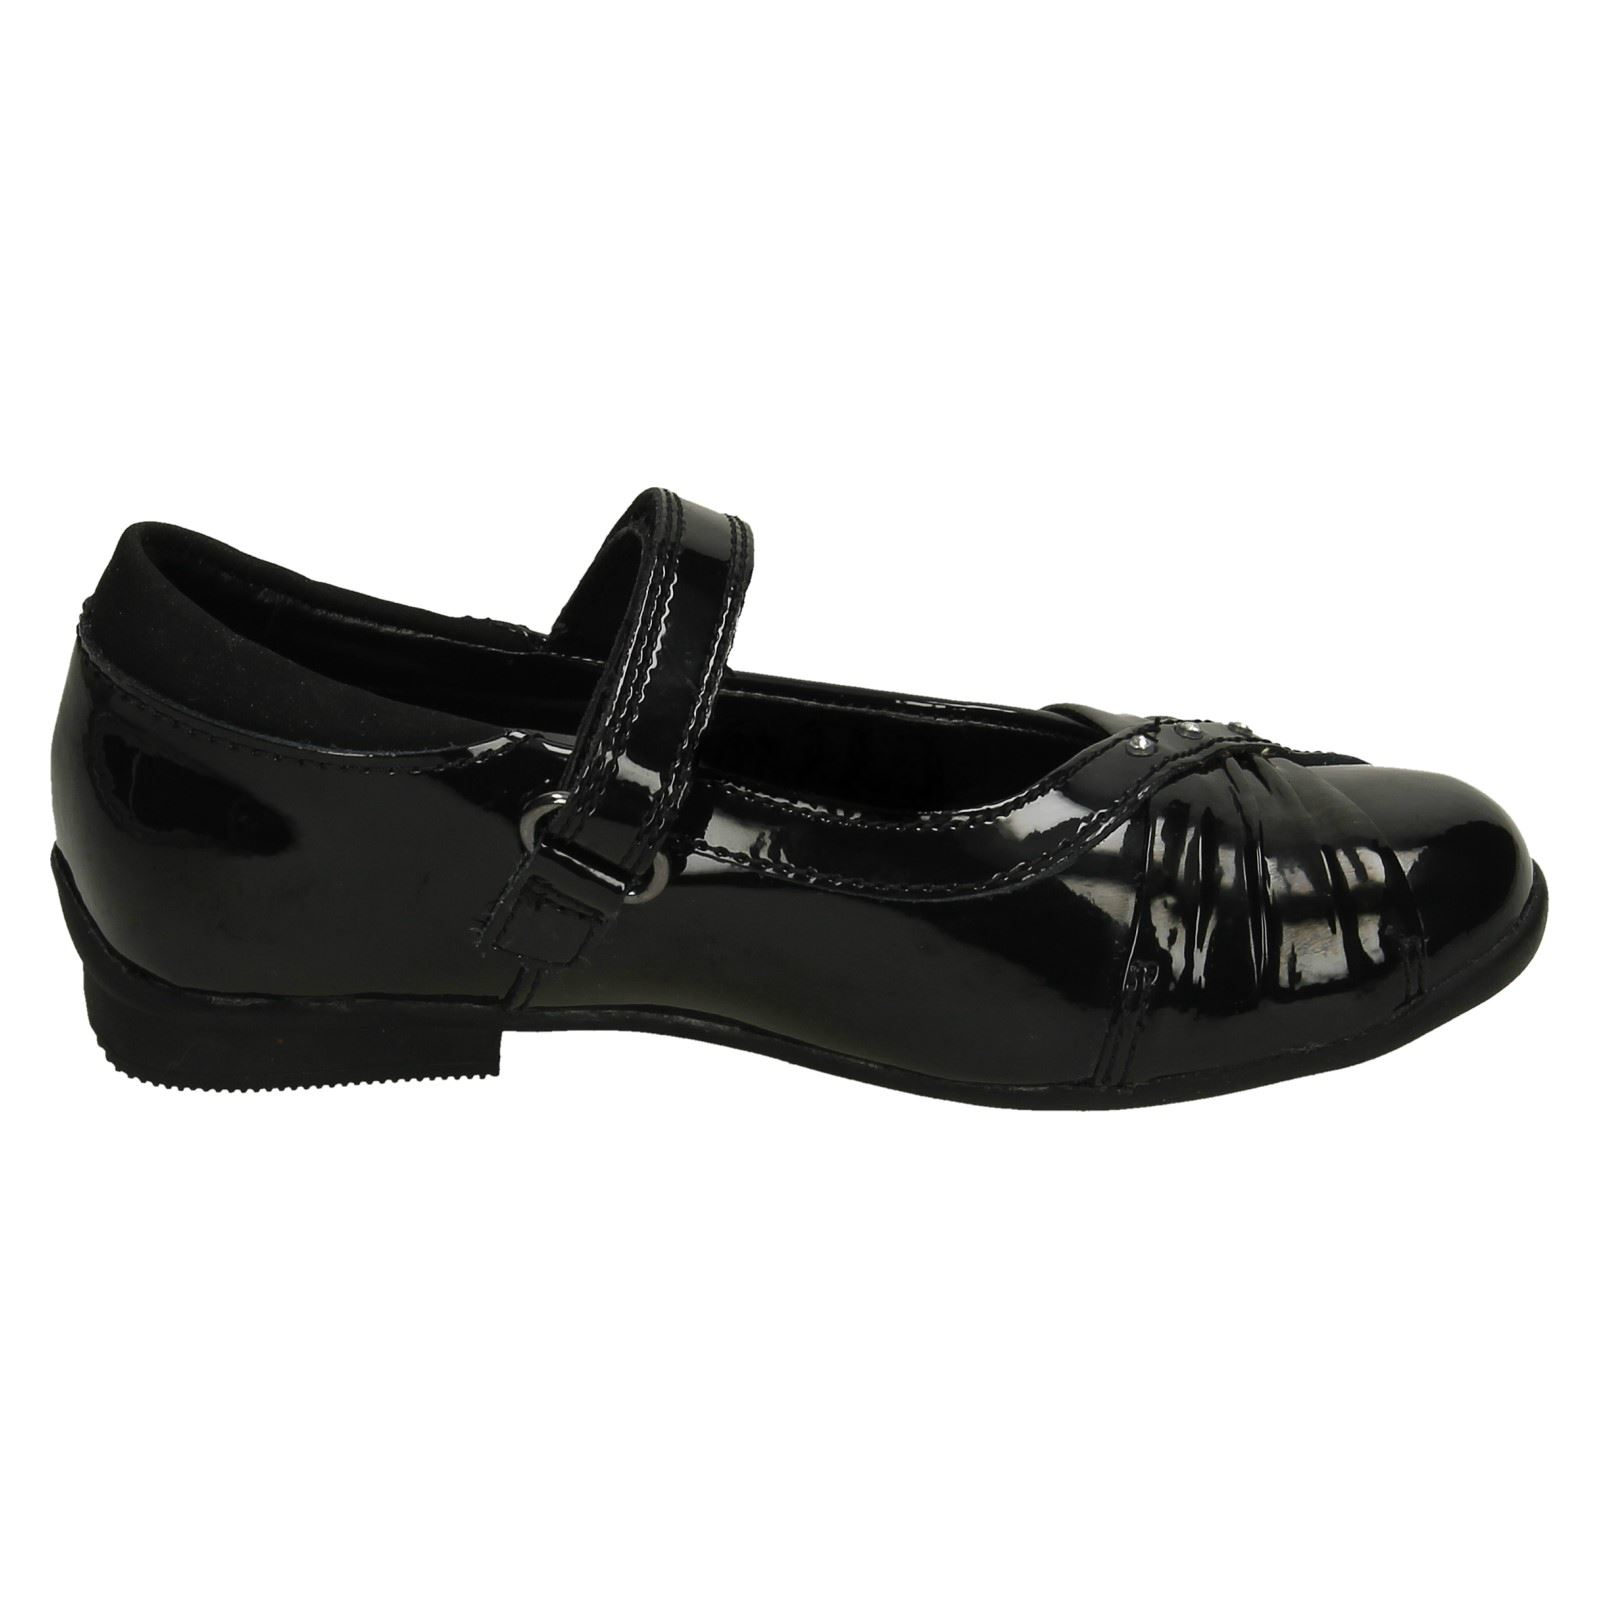 Girls Clarks Leather / Patent Hook & Loop Diamante School Shoes Dolly Shy